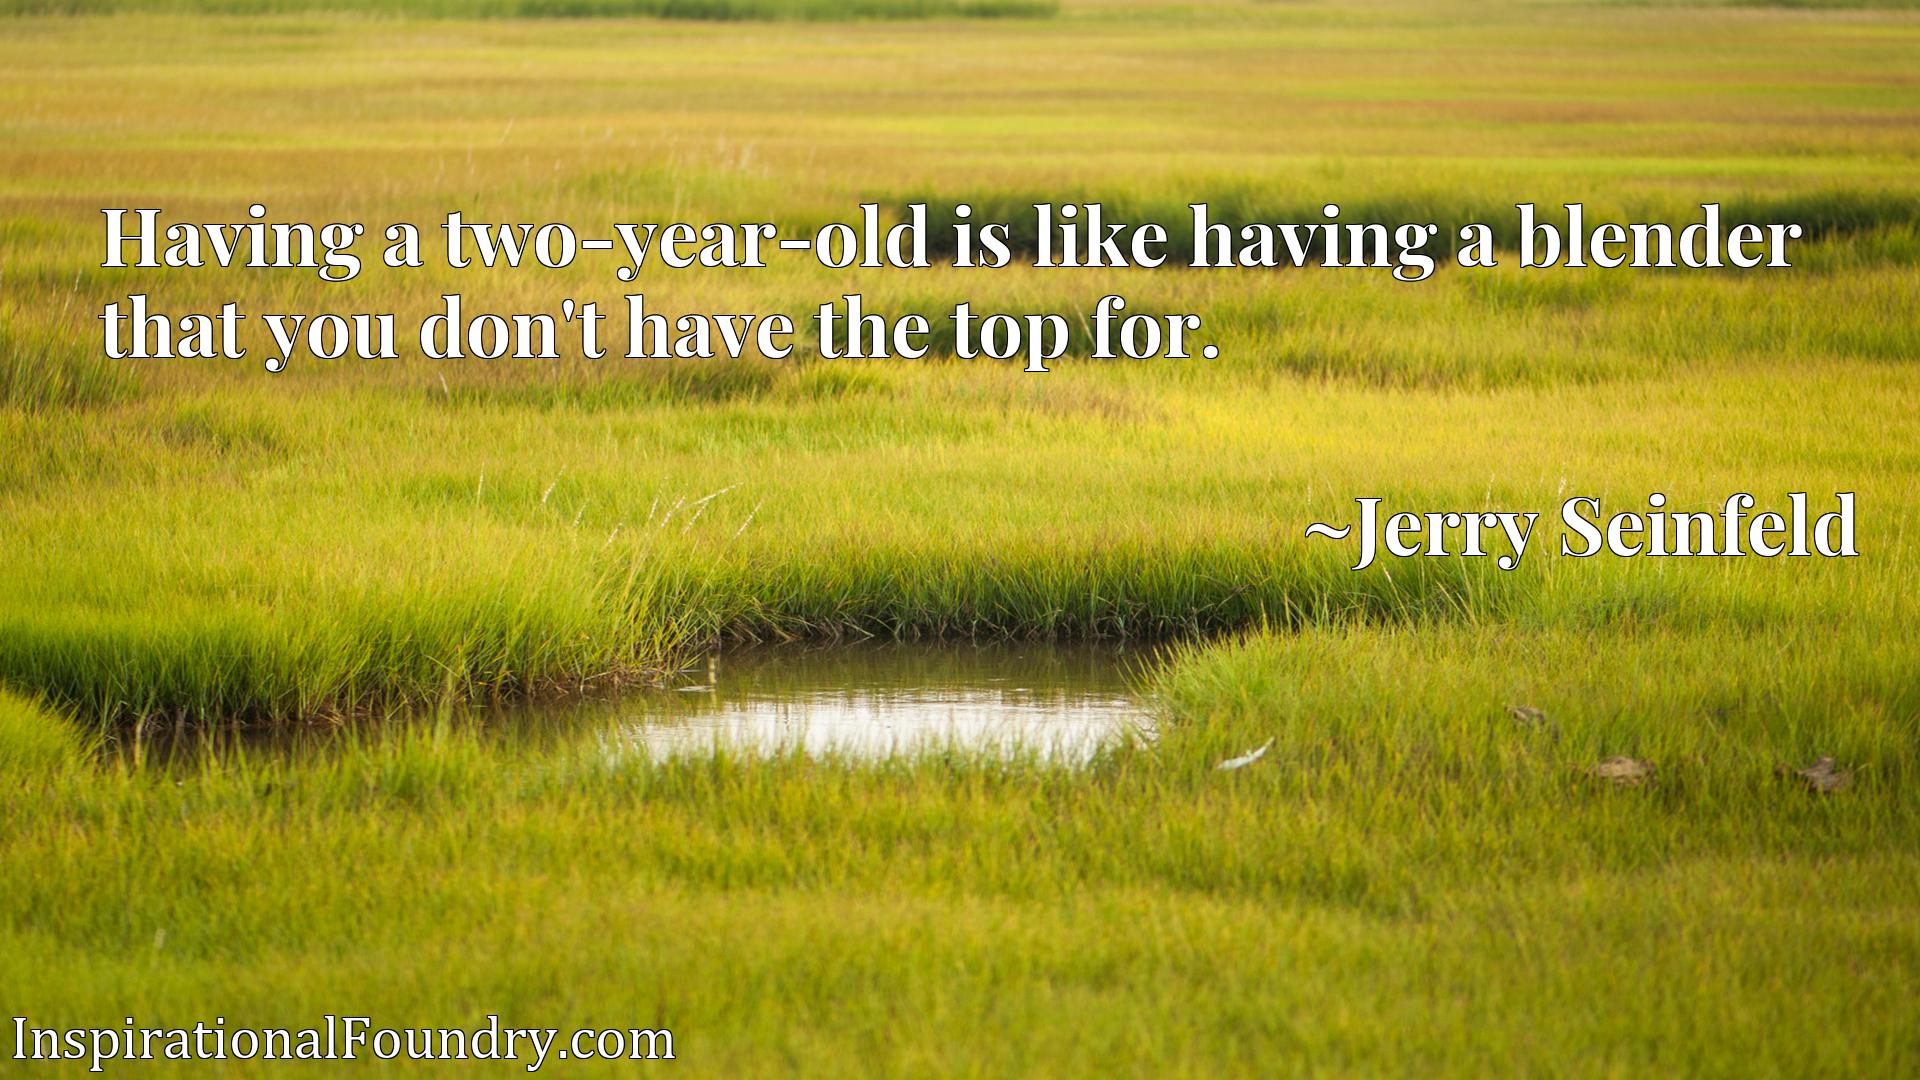 Having a two-year-old is like having a blender that you don't have the top for.